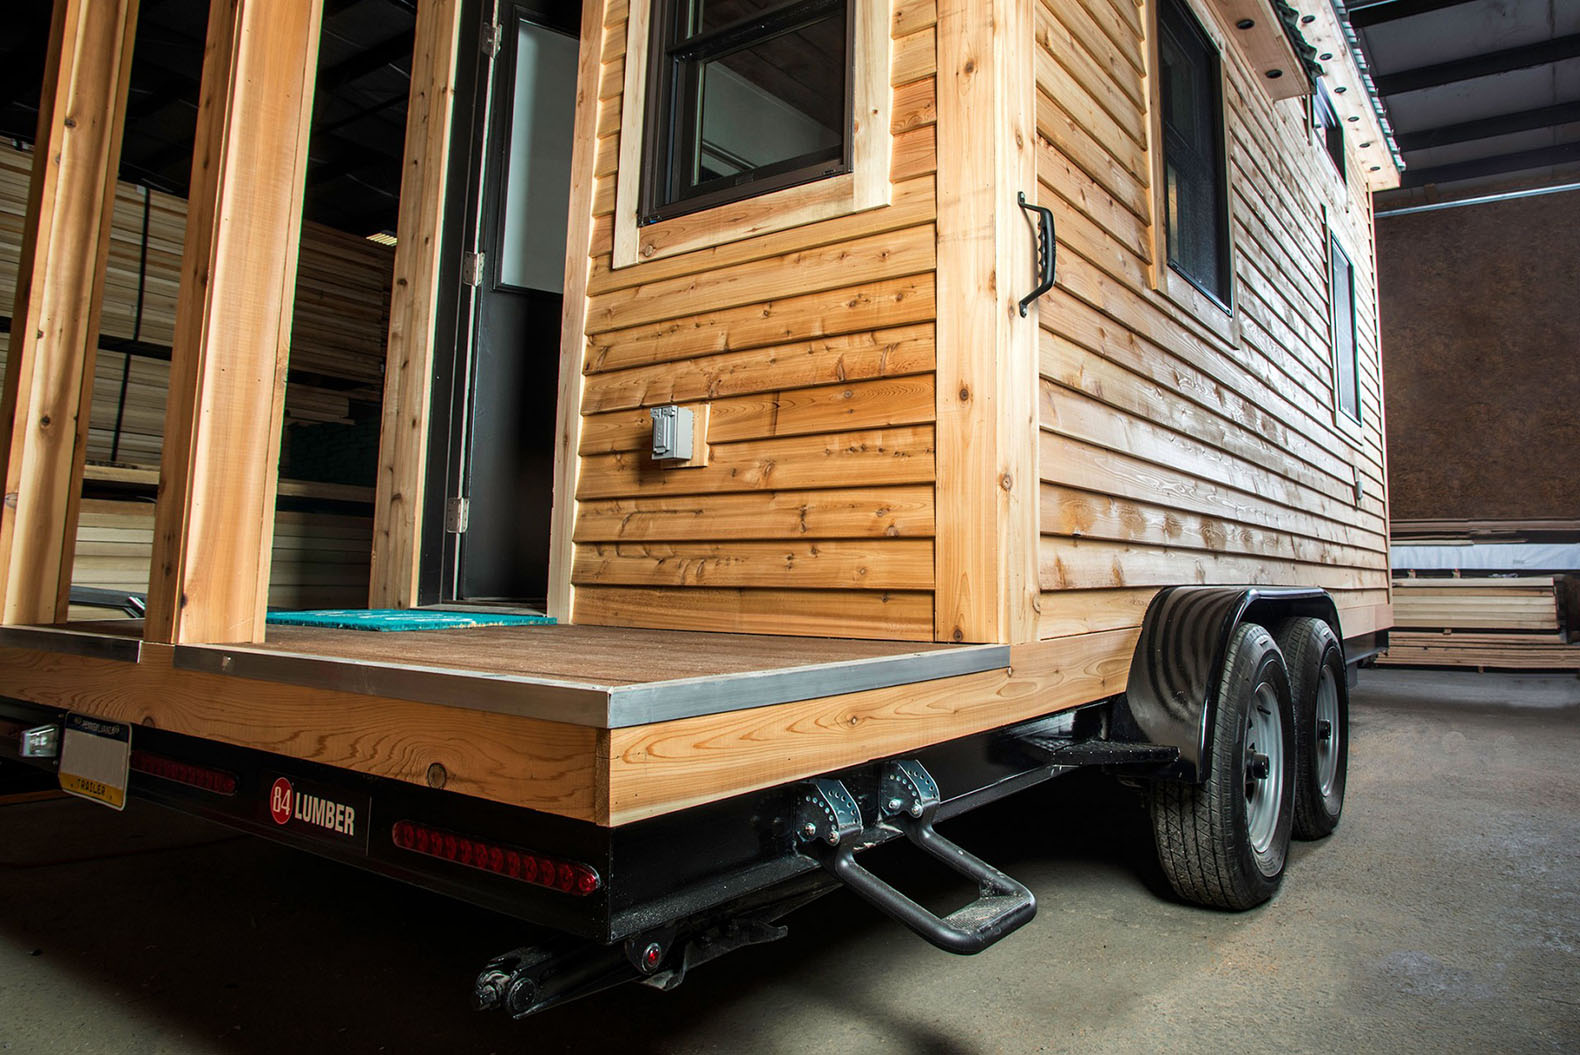 84 Lumber launches gorgeous tiny homes that you can buy or build